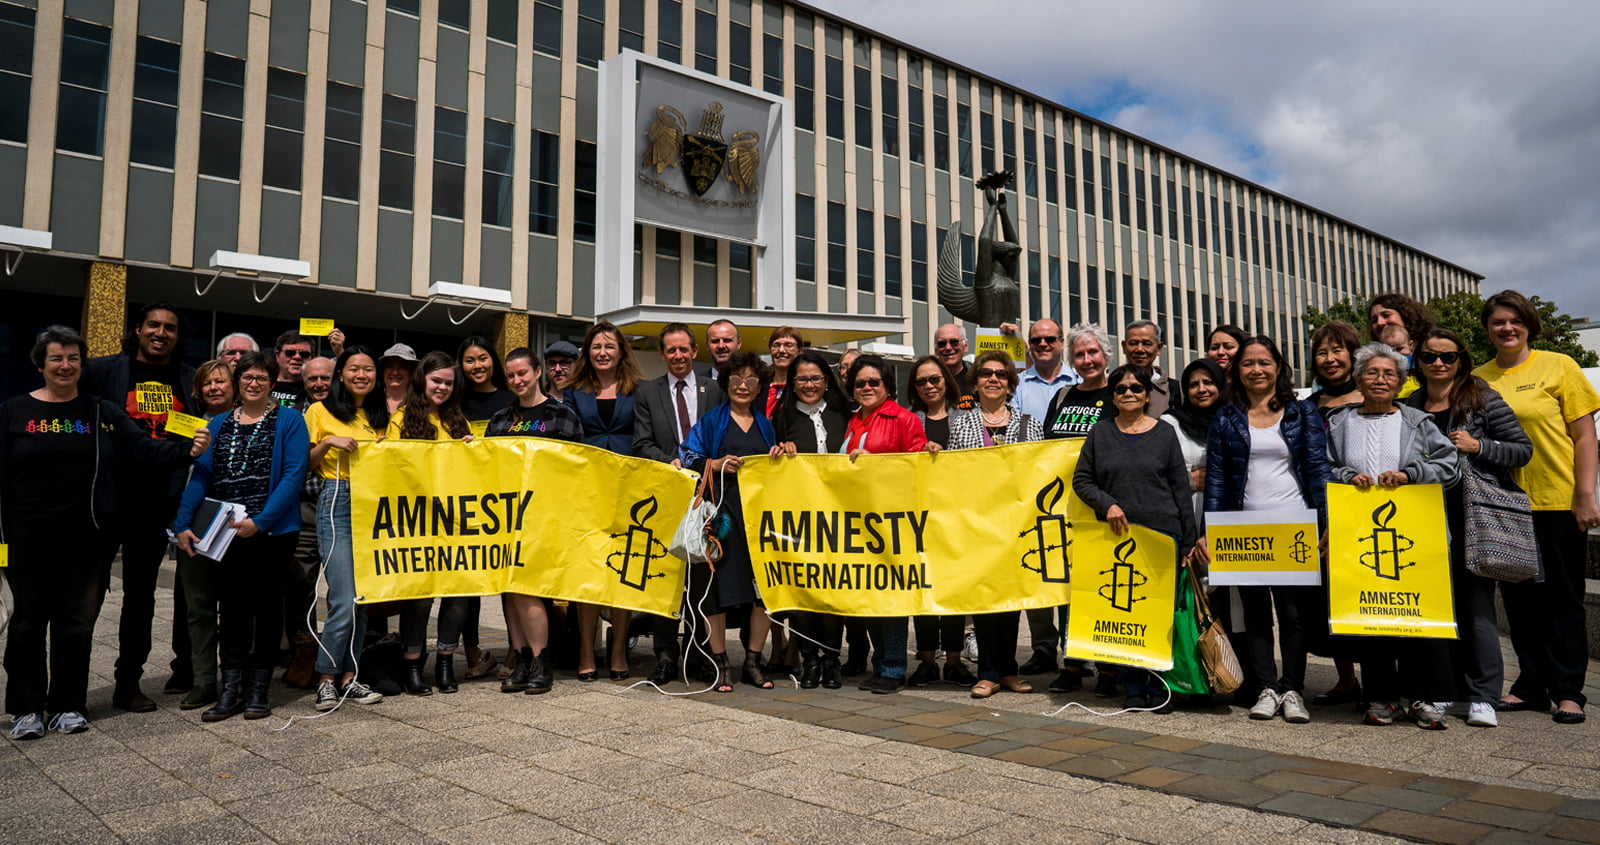 a group of people holding yellow Amnesty banners standing outside Parliament House in Canberra